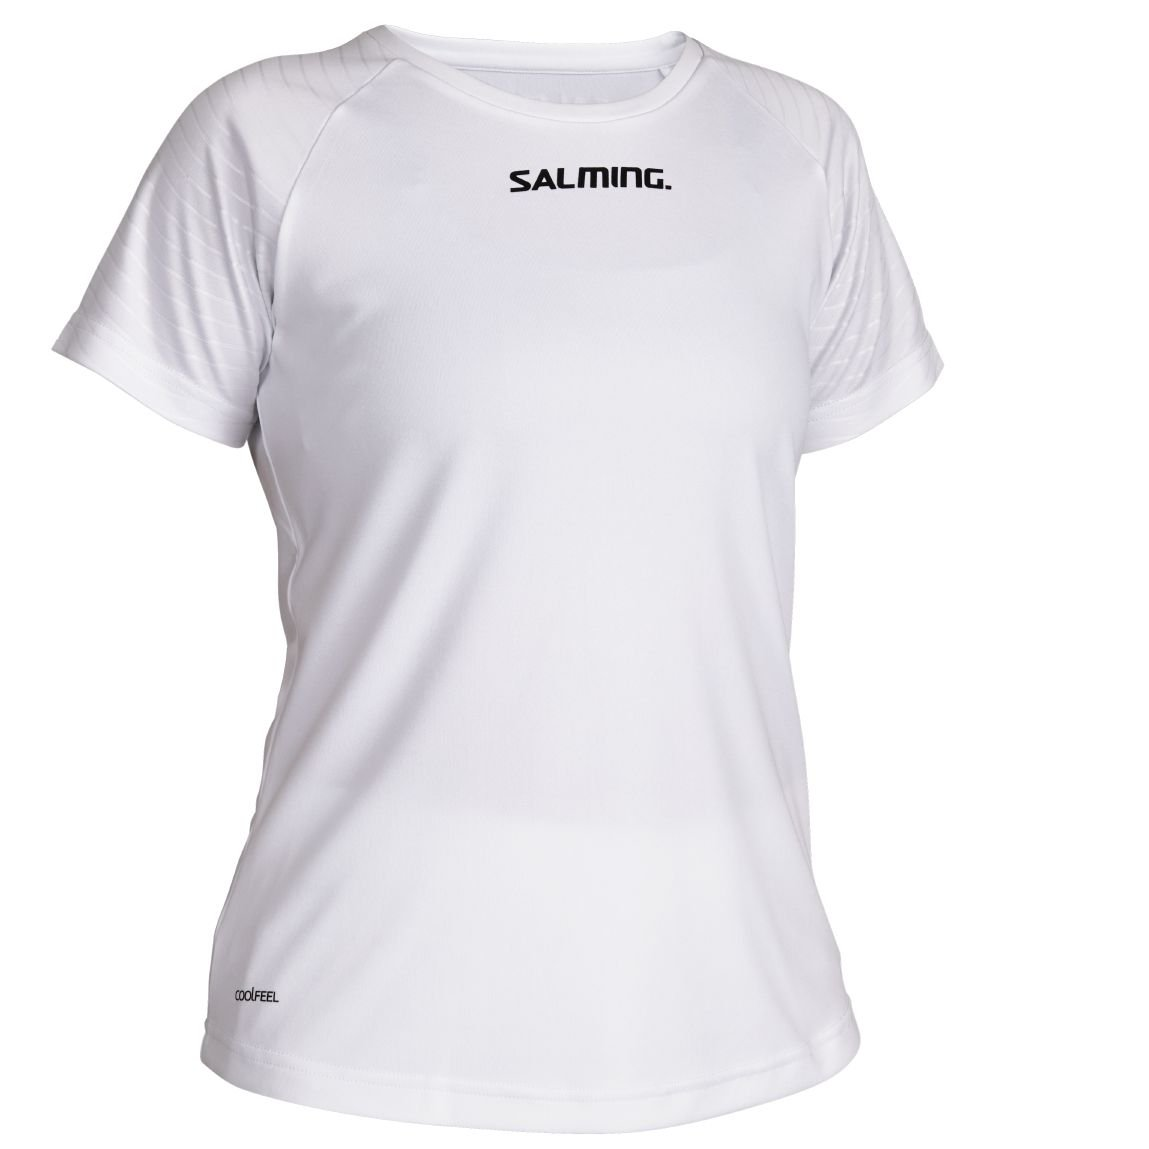 Salming Diamond Game Tee Women XL